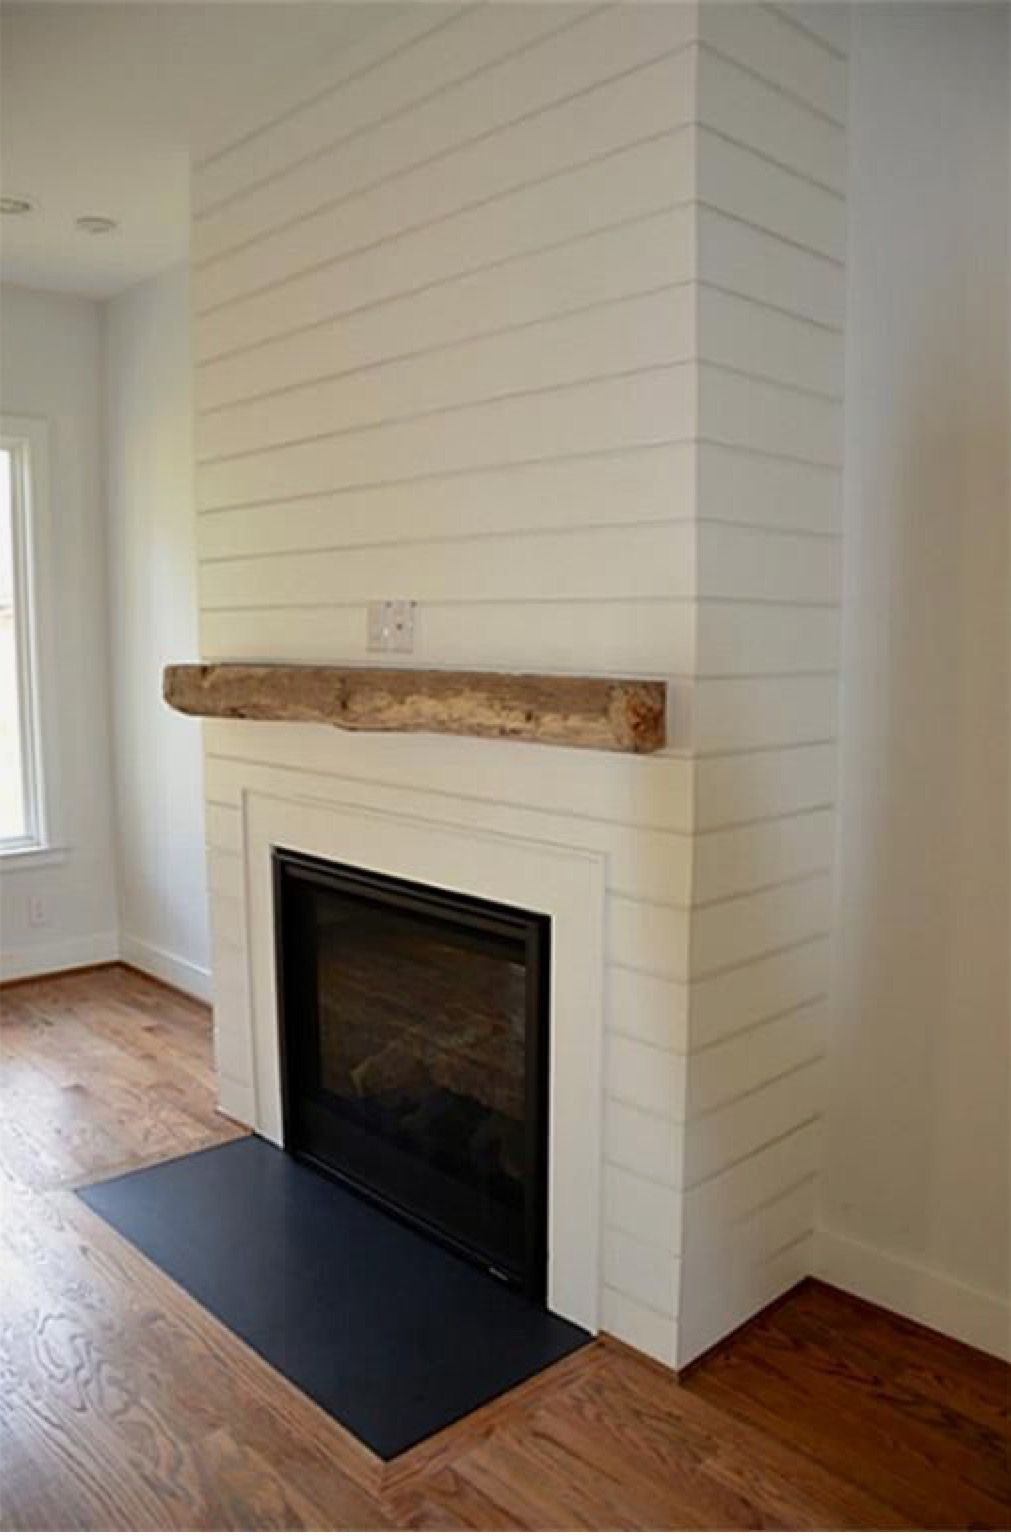 gas version with to install pictures fireplace mantel how step a steps